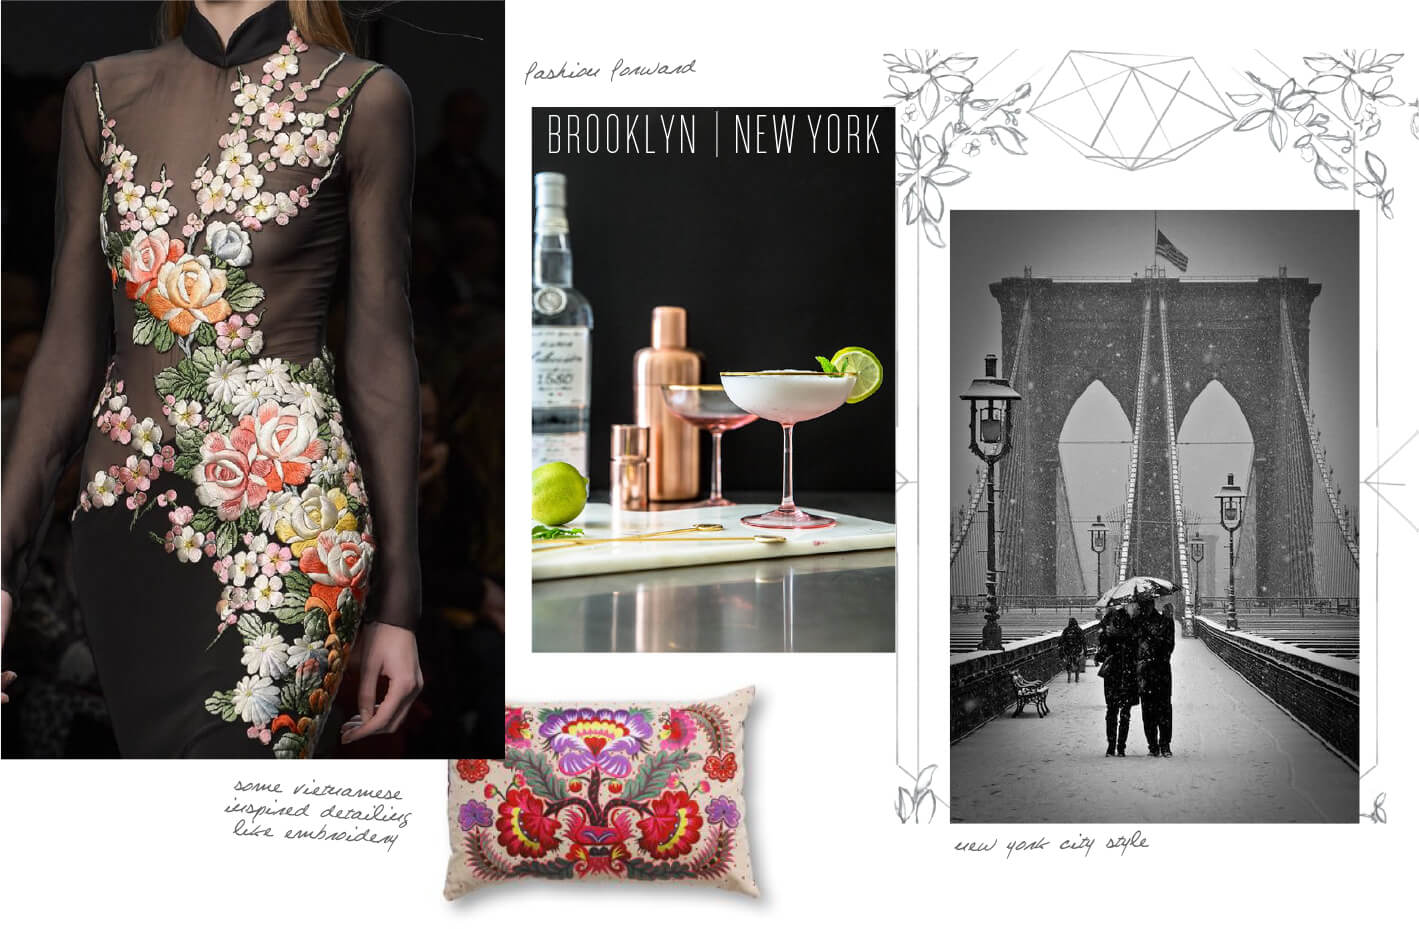 Brooklyn and Vietnamese image inspiration